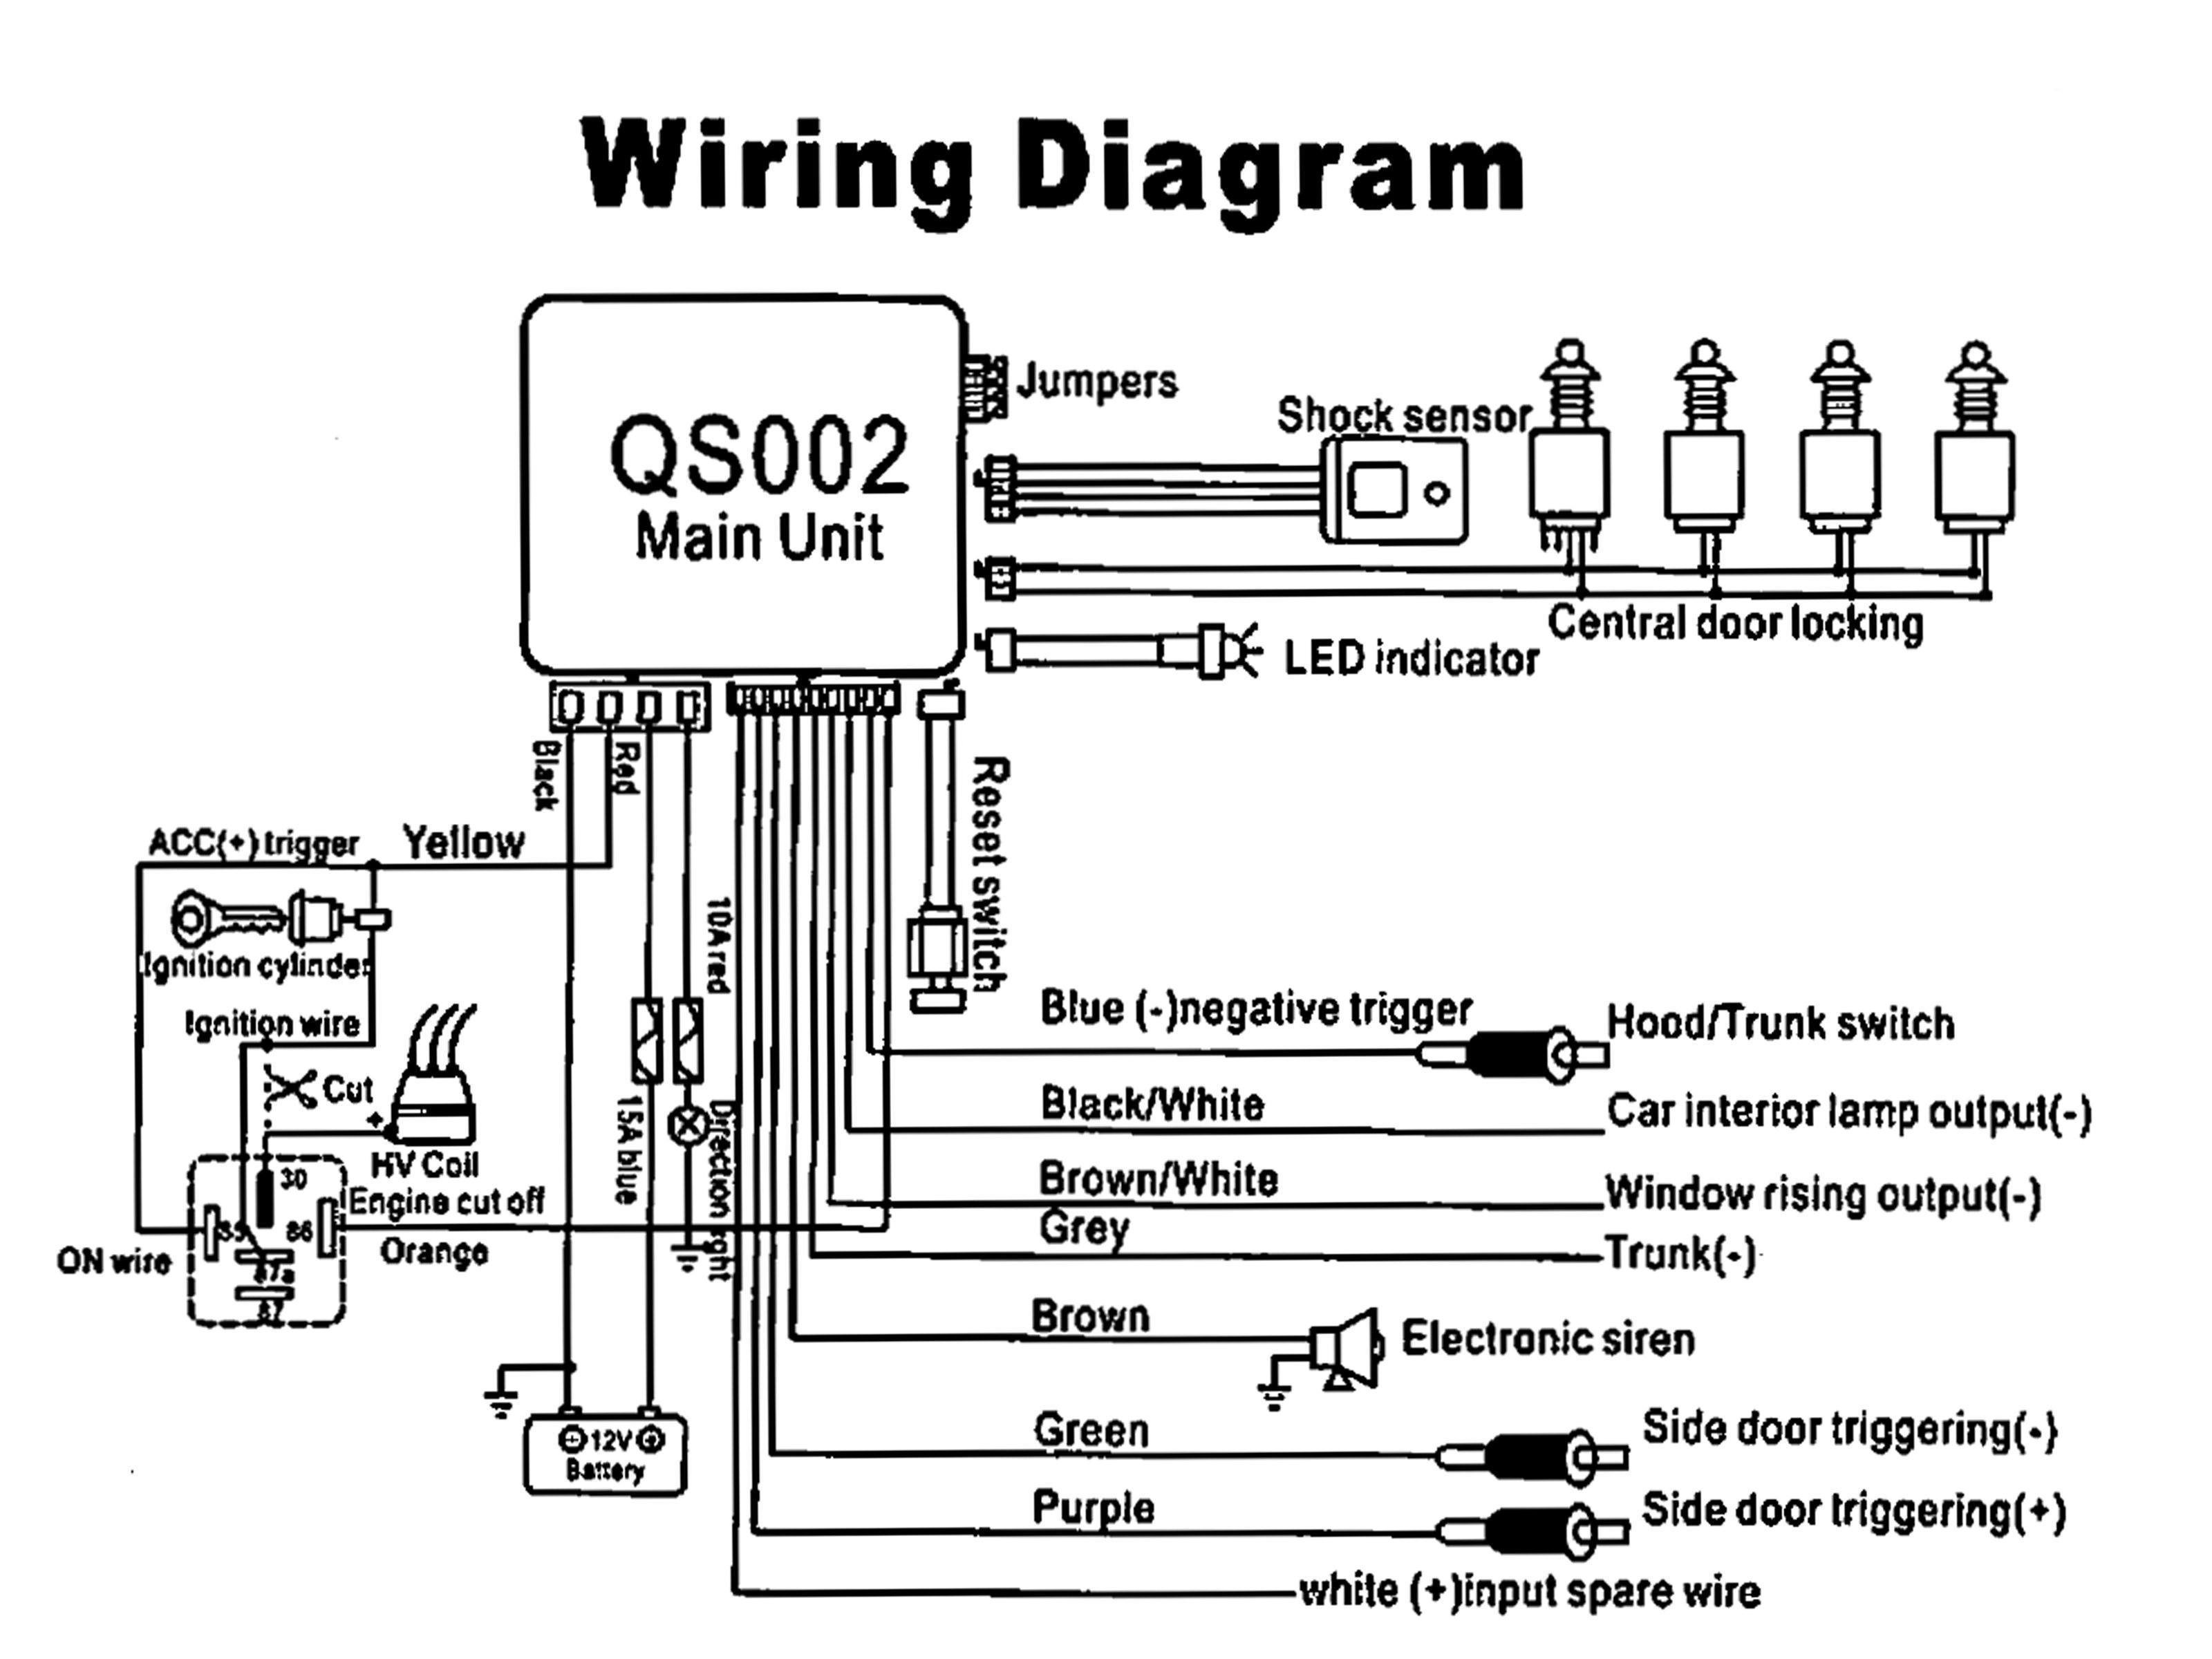 Omega Car Alarm Wiring Diagrams Best Car Alarm Wire Diagram Gallery Everything You Need to Know Of Omega Car Alarm Wiring Diagrams Viper 5706 Wiring Diagram Free Download Wiring Diagram Schematic